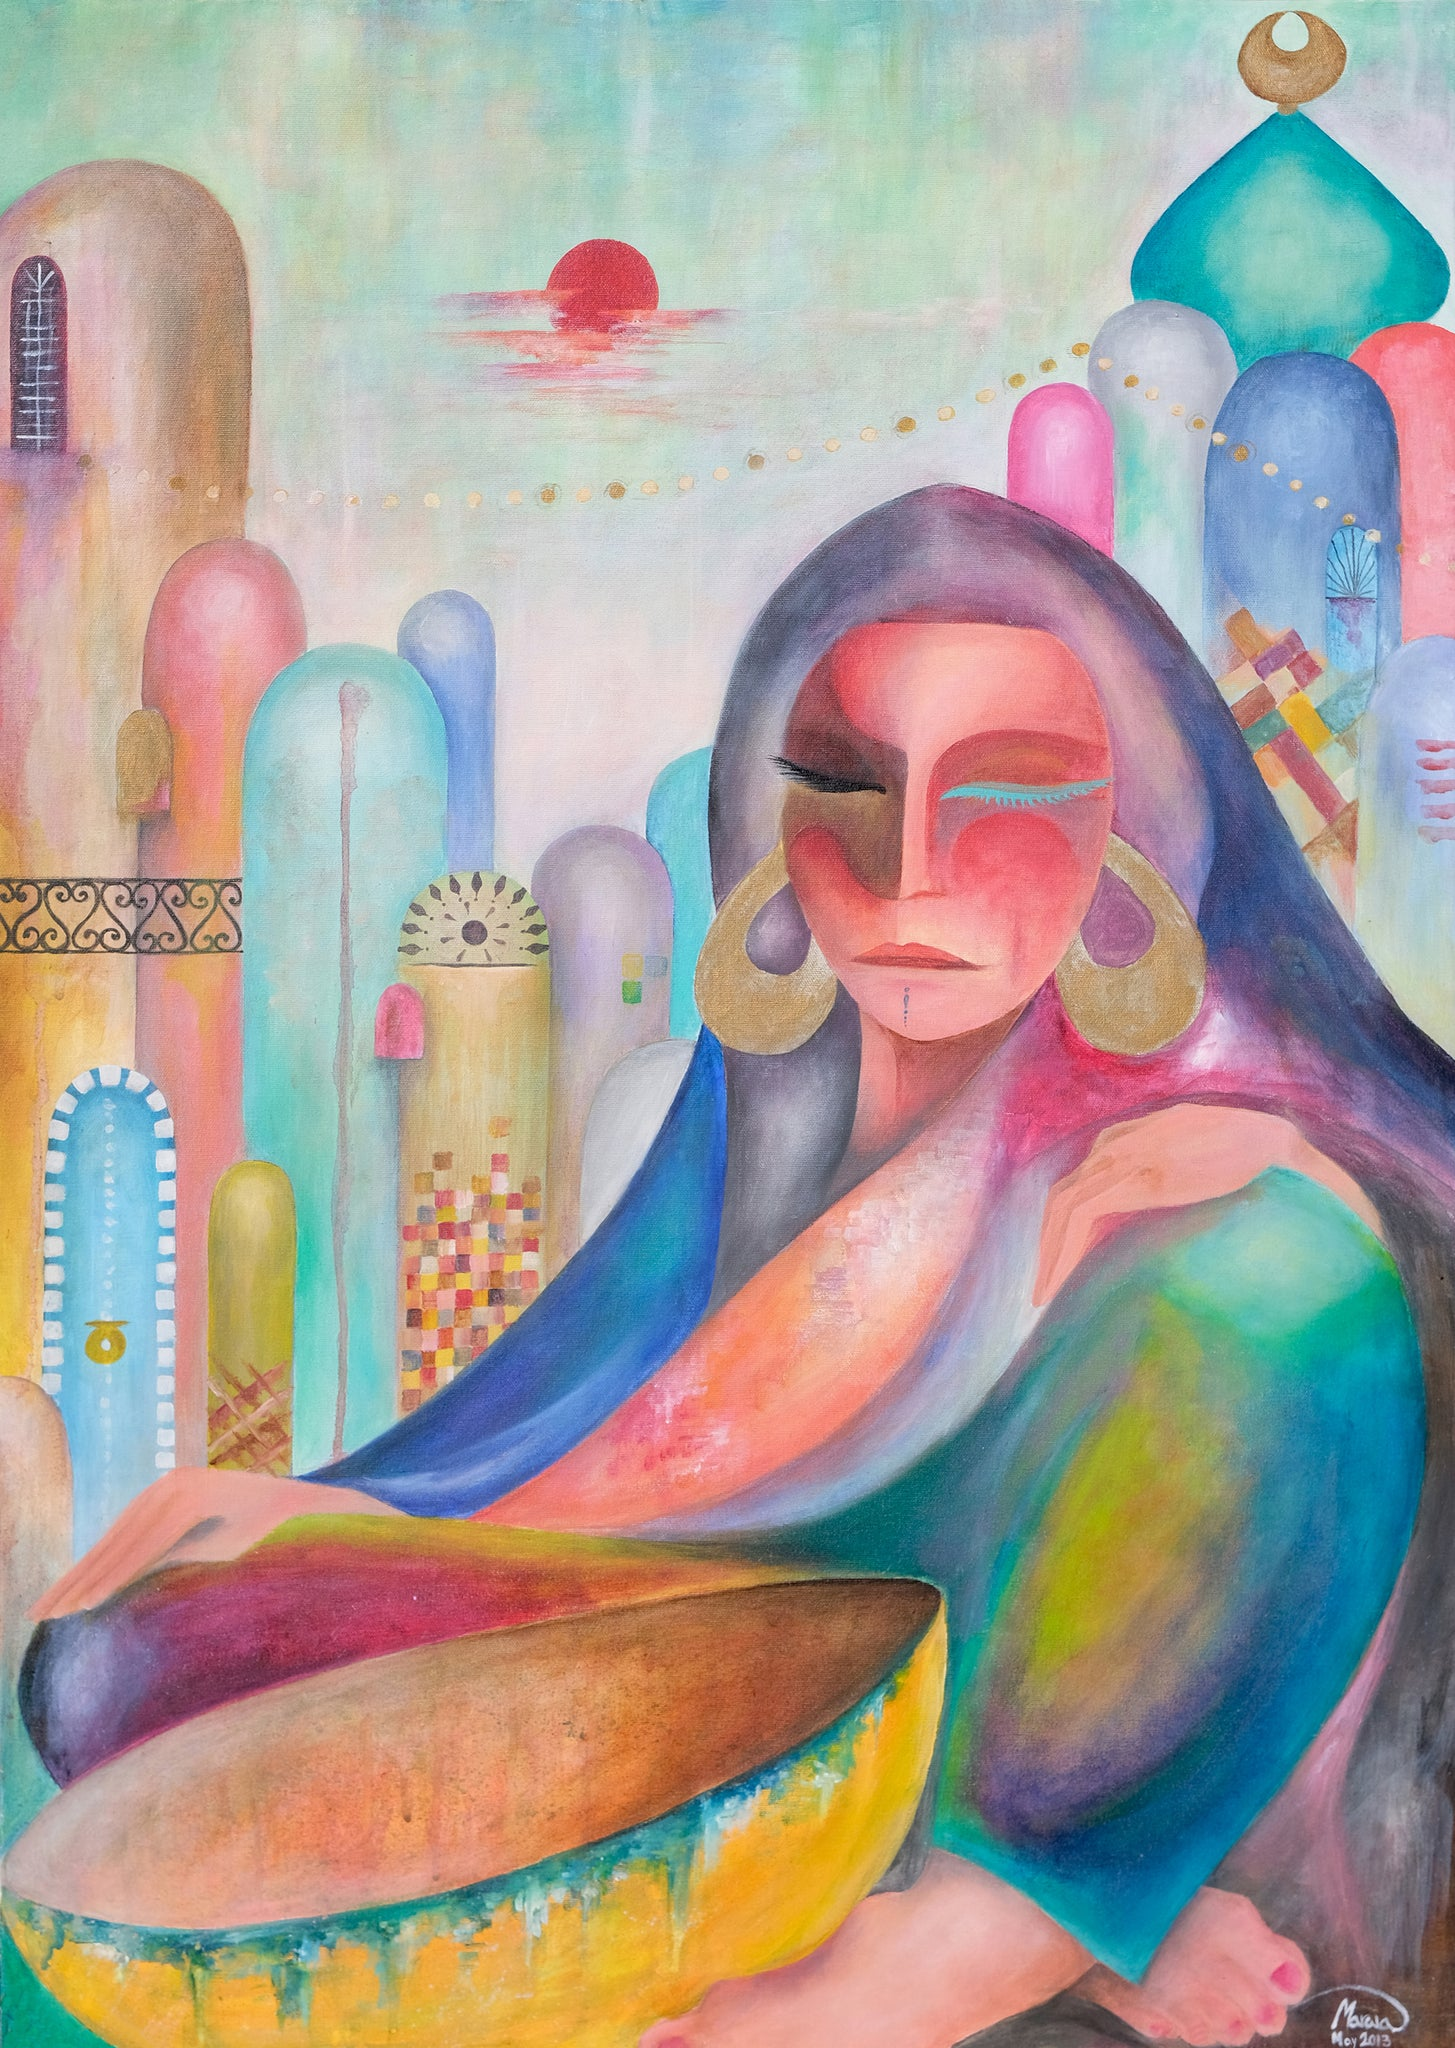 City Woman - Kufaishi Art